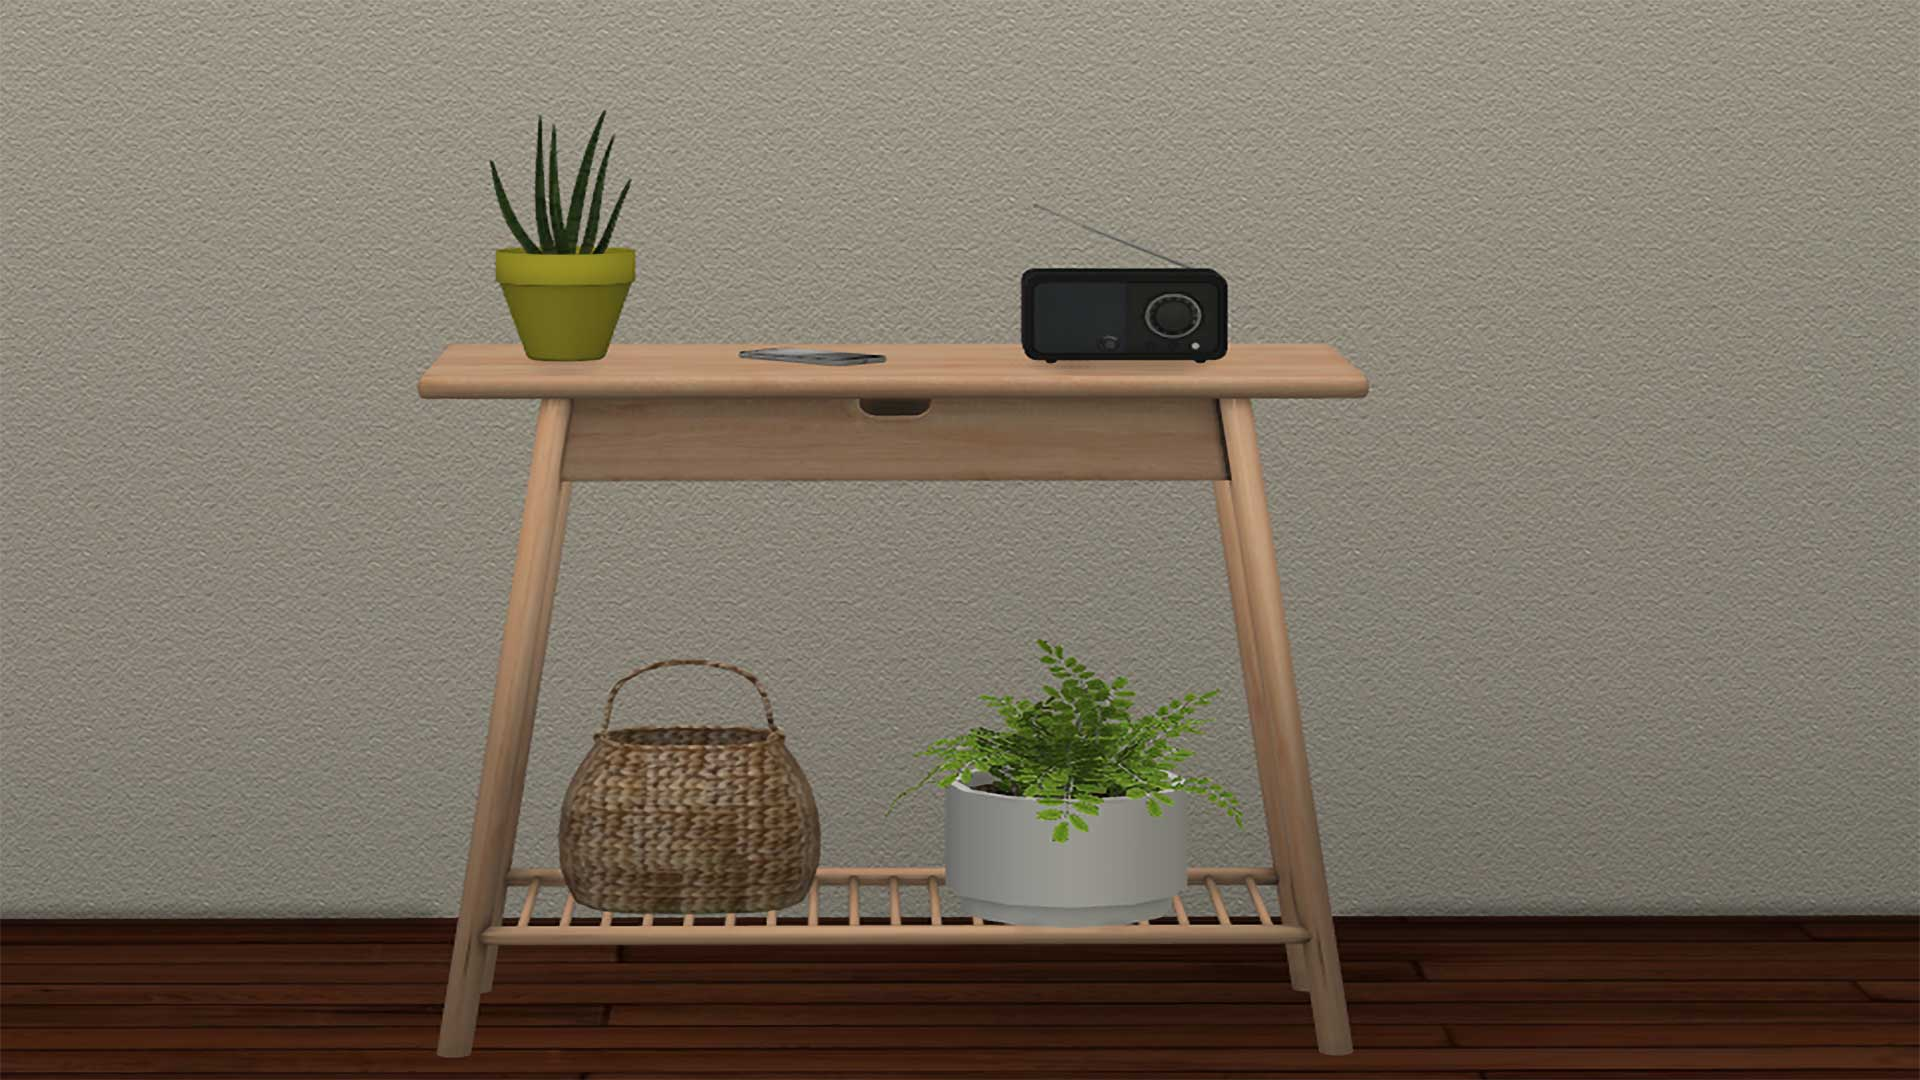 Aalto Hallway Console, high quality sims 4 cc, sunkissedlilacs, free sims 4 furniture, sims 4 custom content,